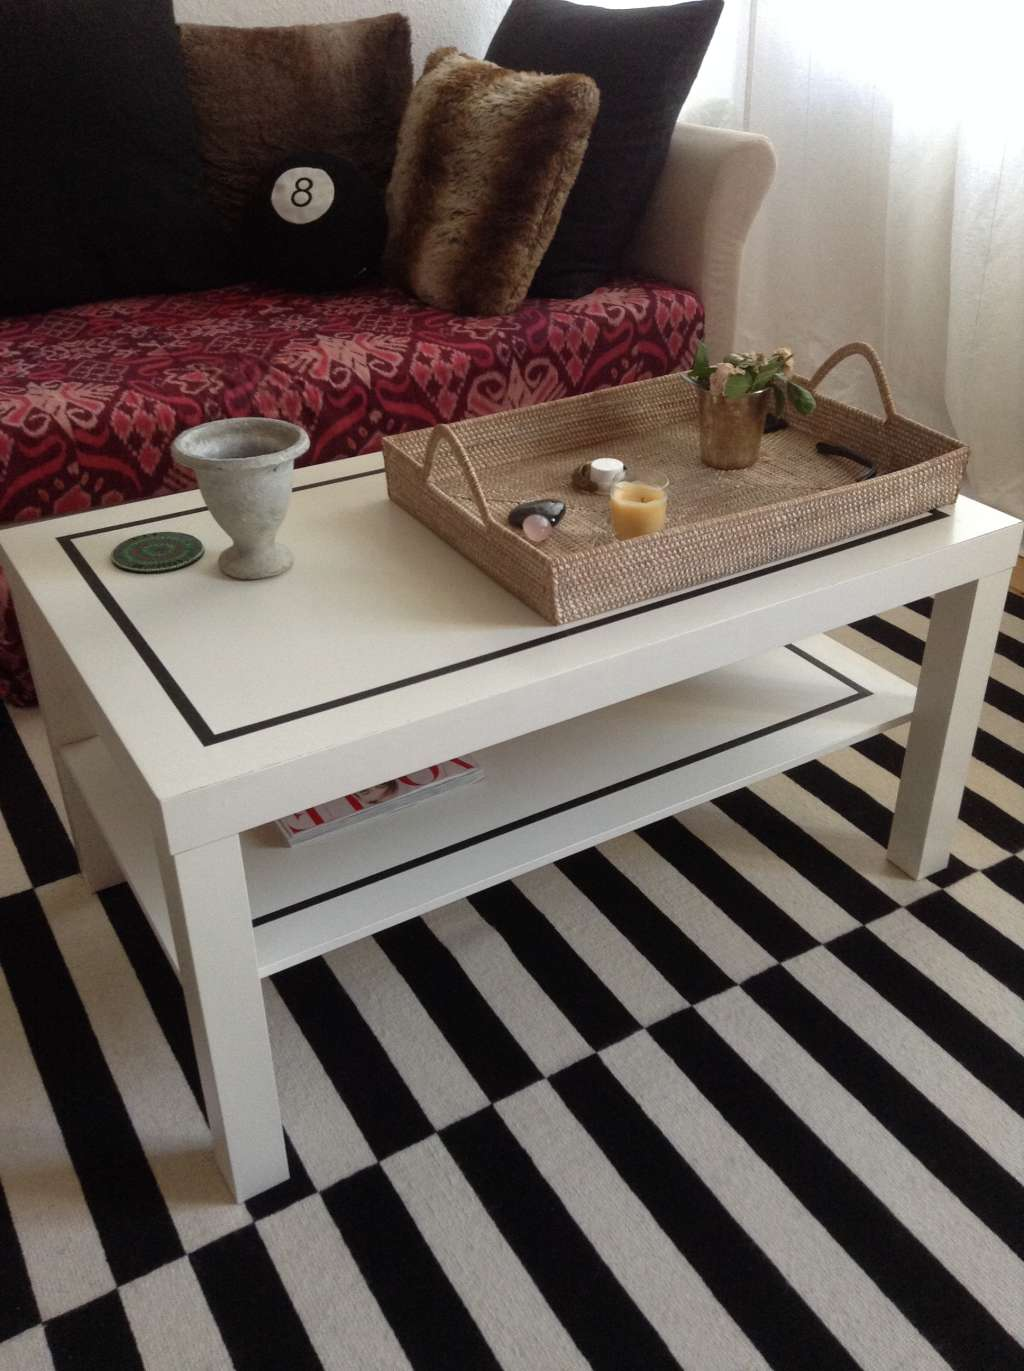 Simple Amp Stylish Diy Ikea Coffee Table Upgrade Apartment Therapy